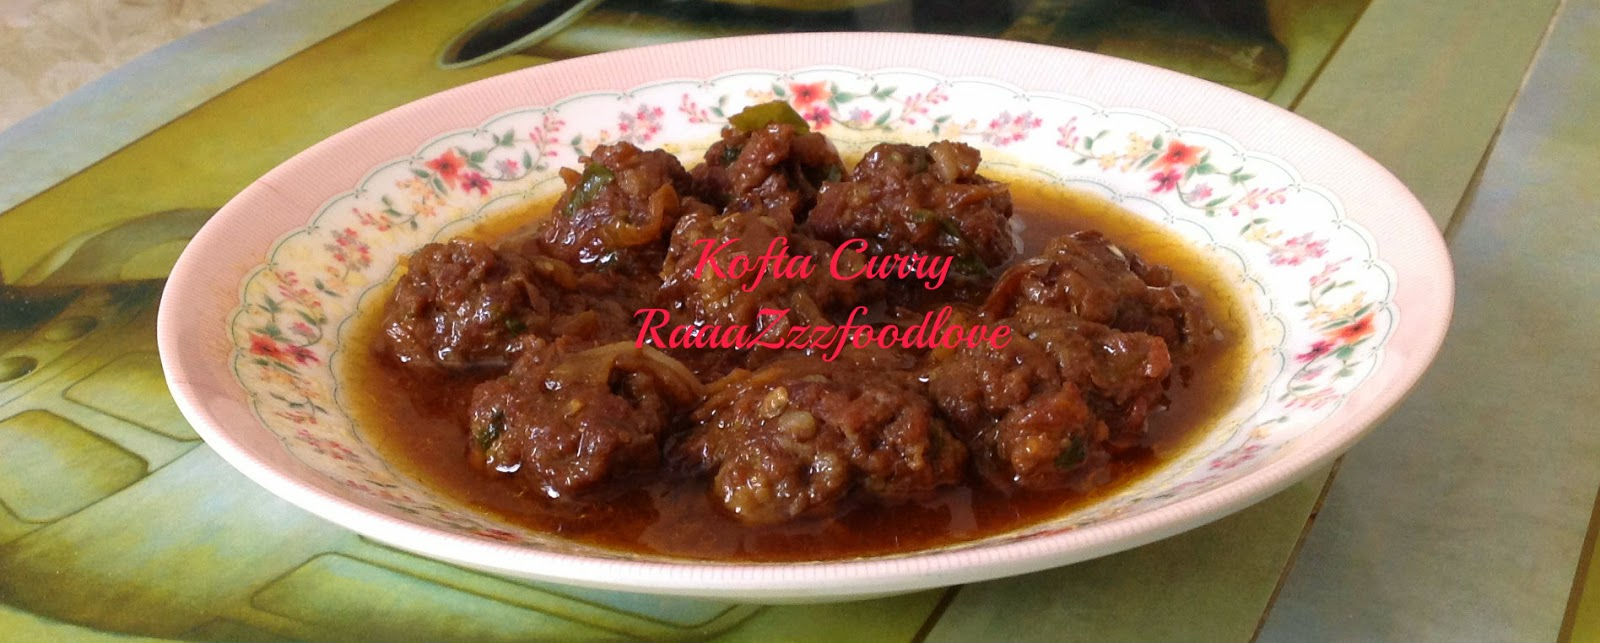 http://raaazzzfoodlove.blogspot.in/2013/08/kofta-curry.html